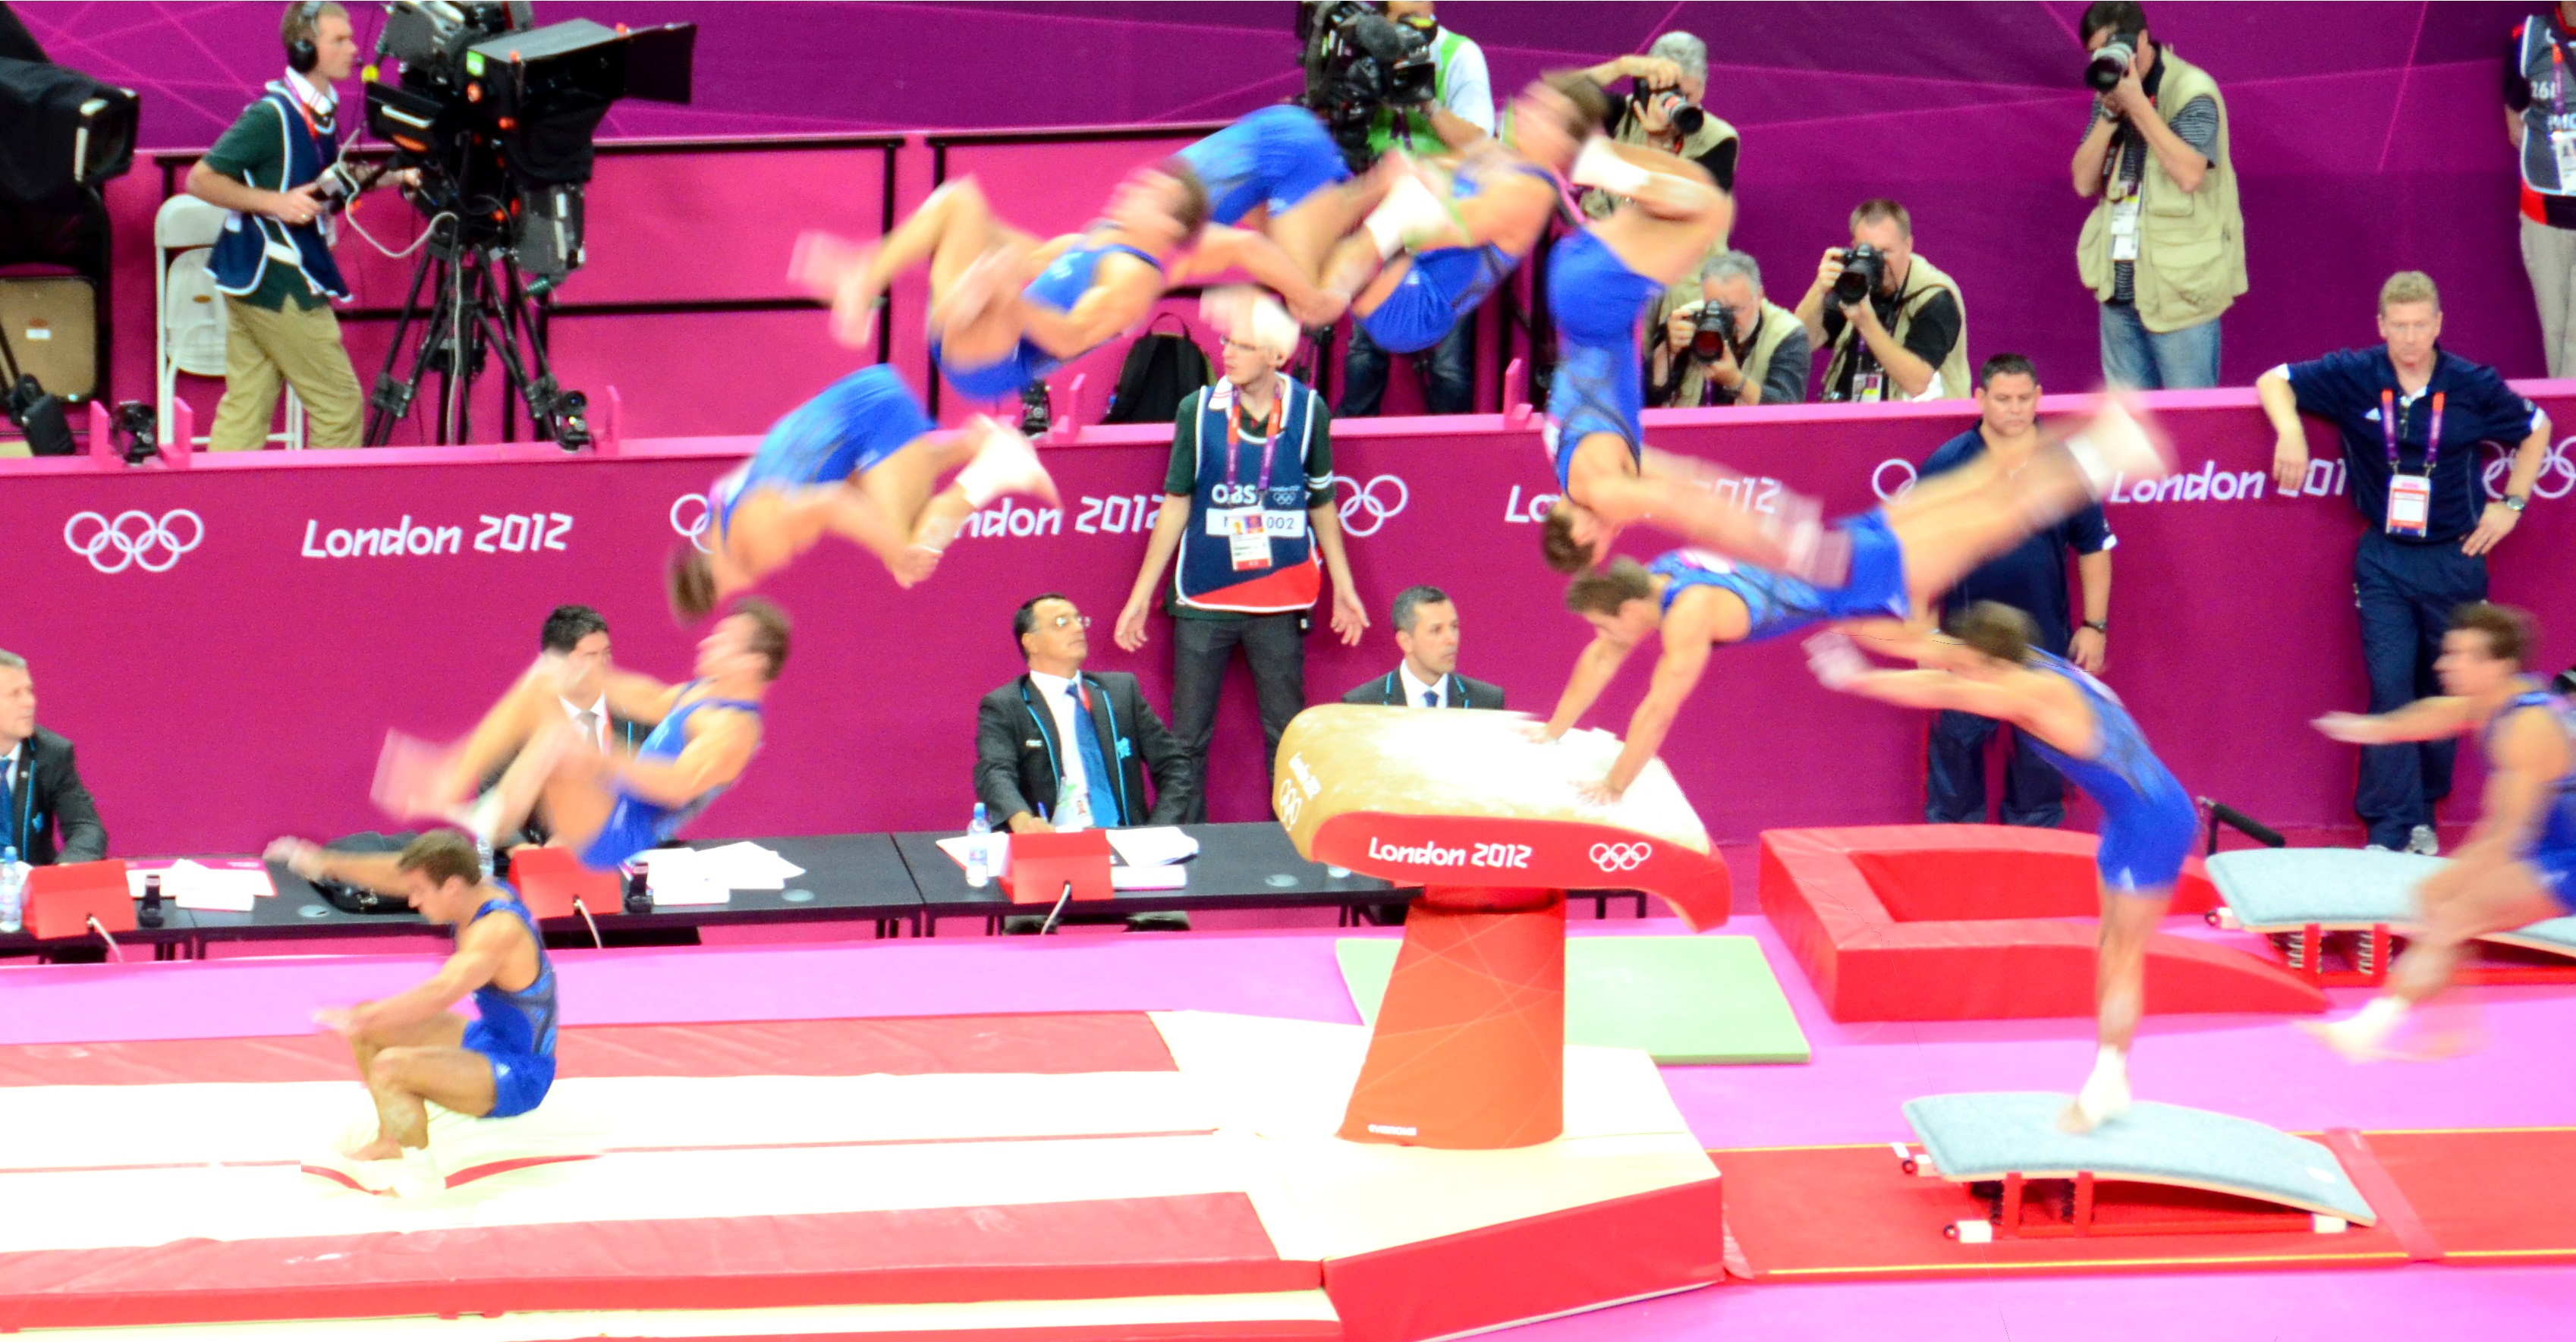 Gymnastics: My Worst Enemy and My Greatest Love | Noah's Blog